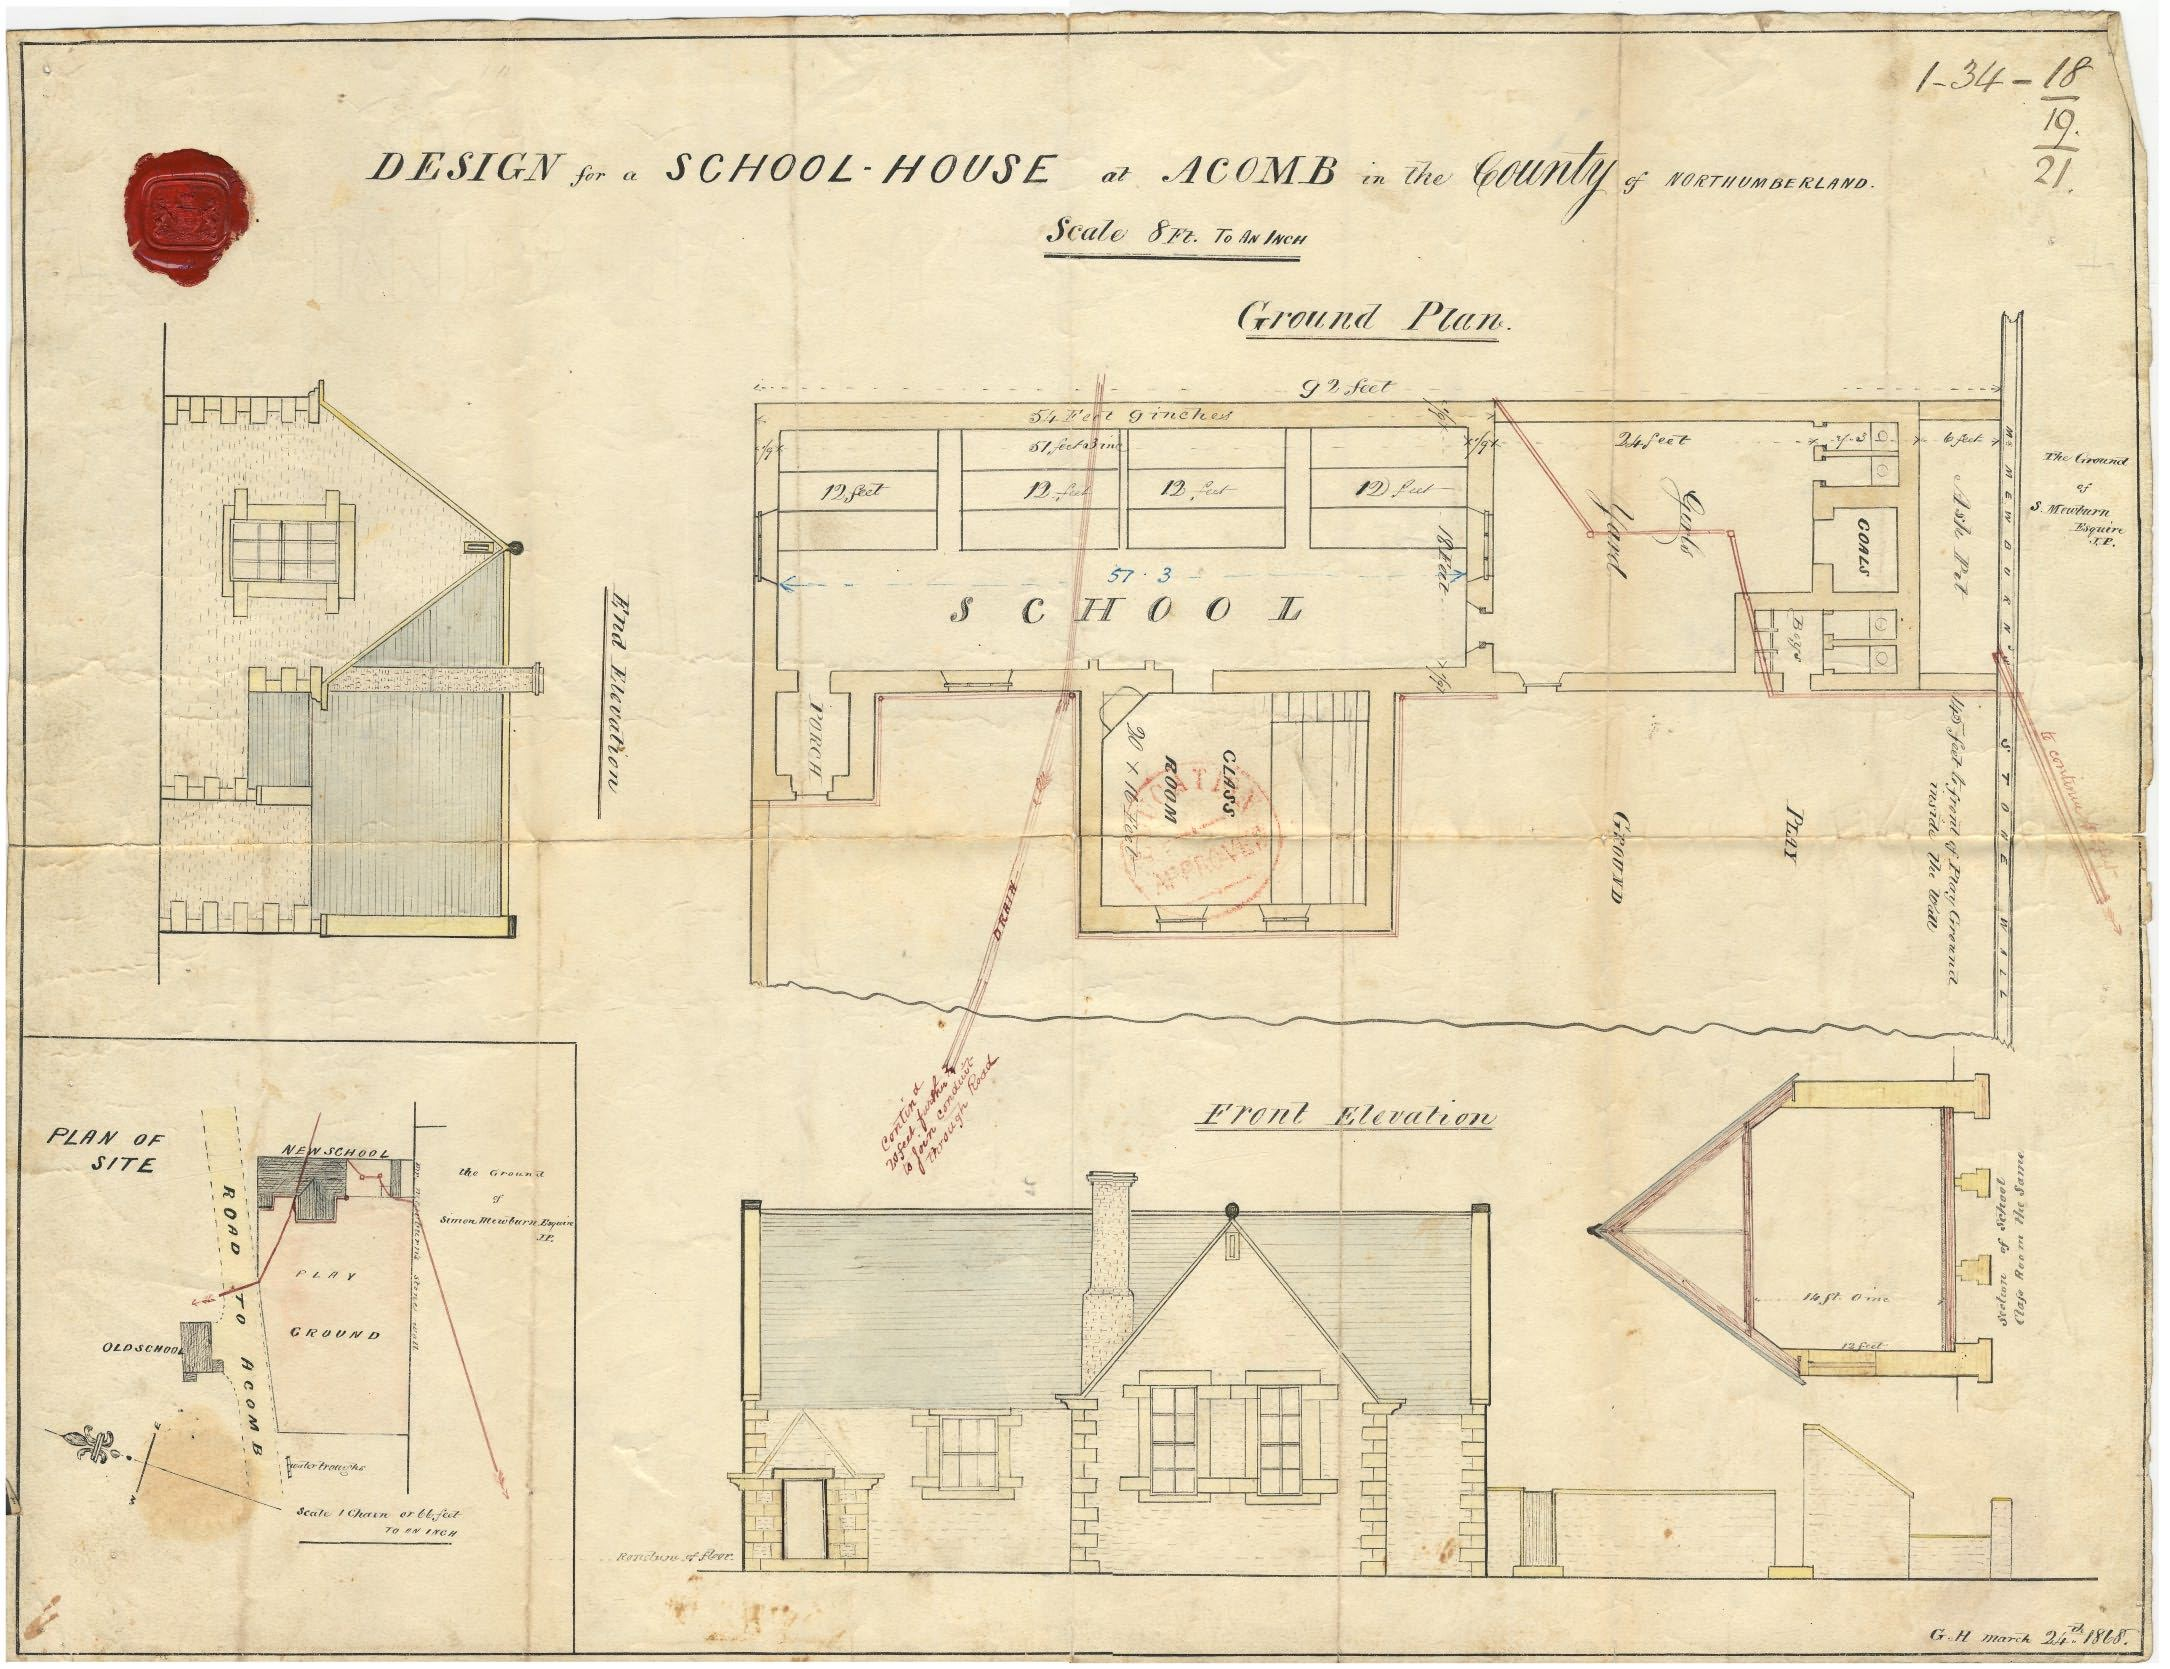 Acomb National School Building Plan